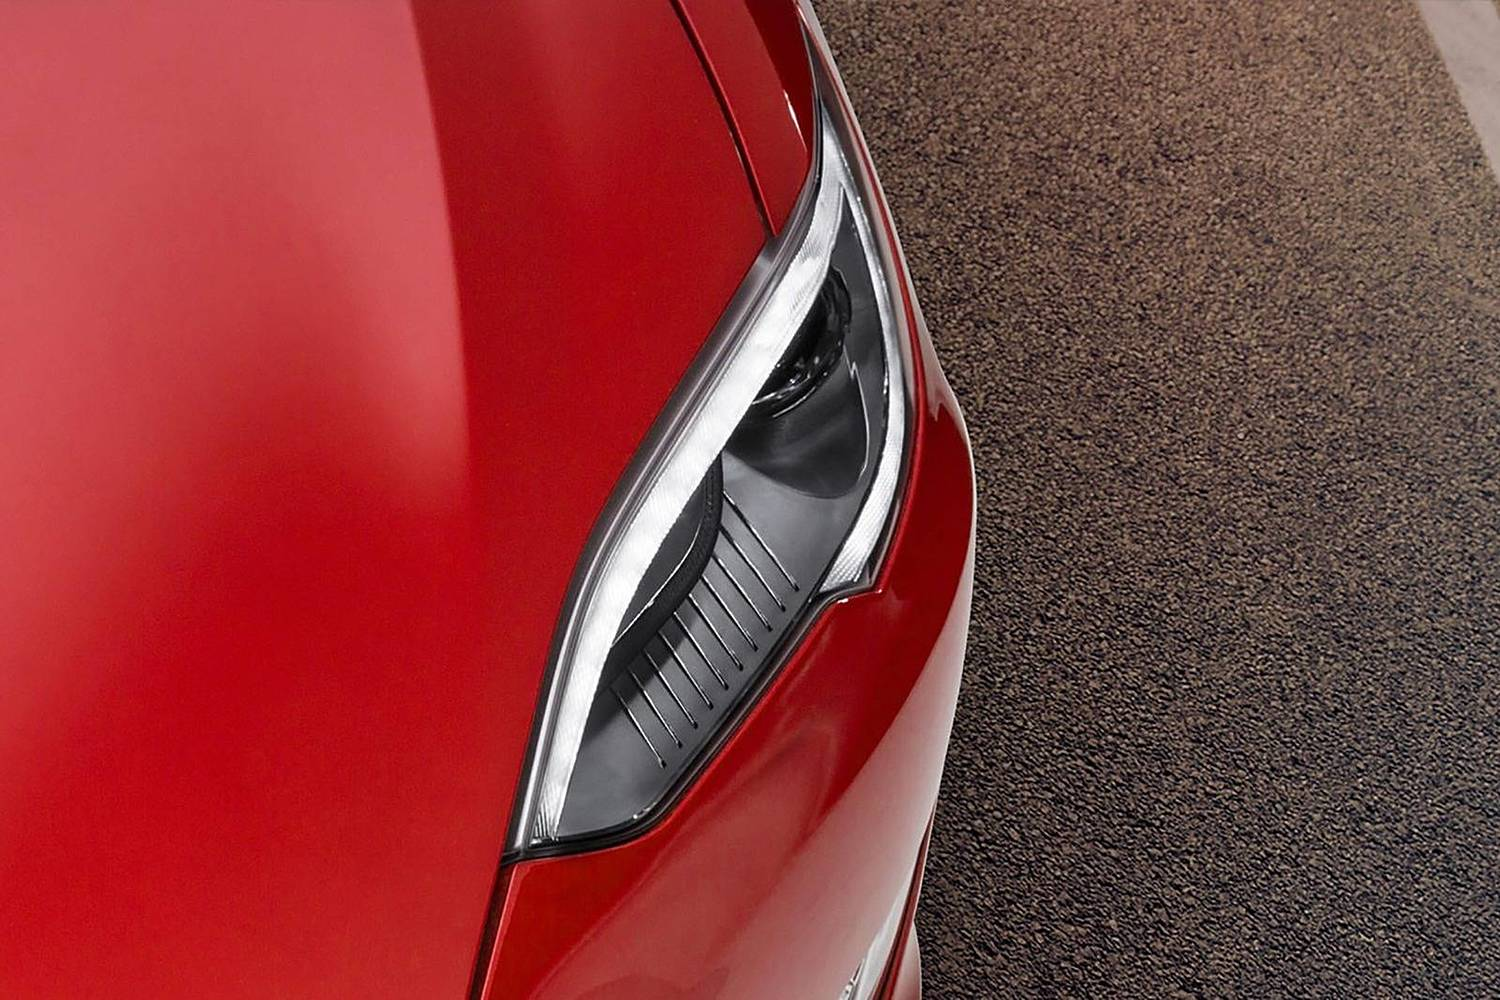 2017 Tesla Model S P100D Sedan Headlamp Detail